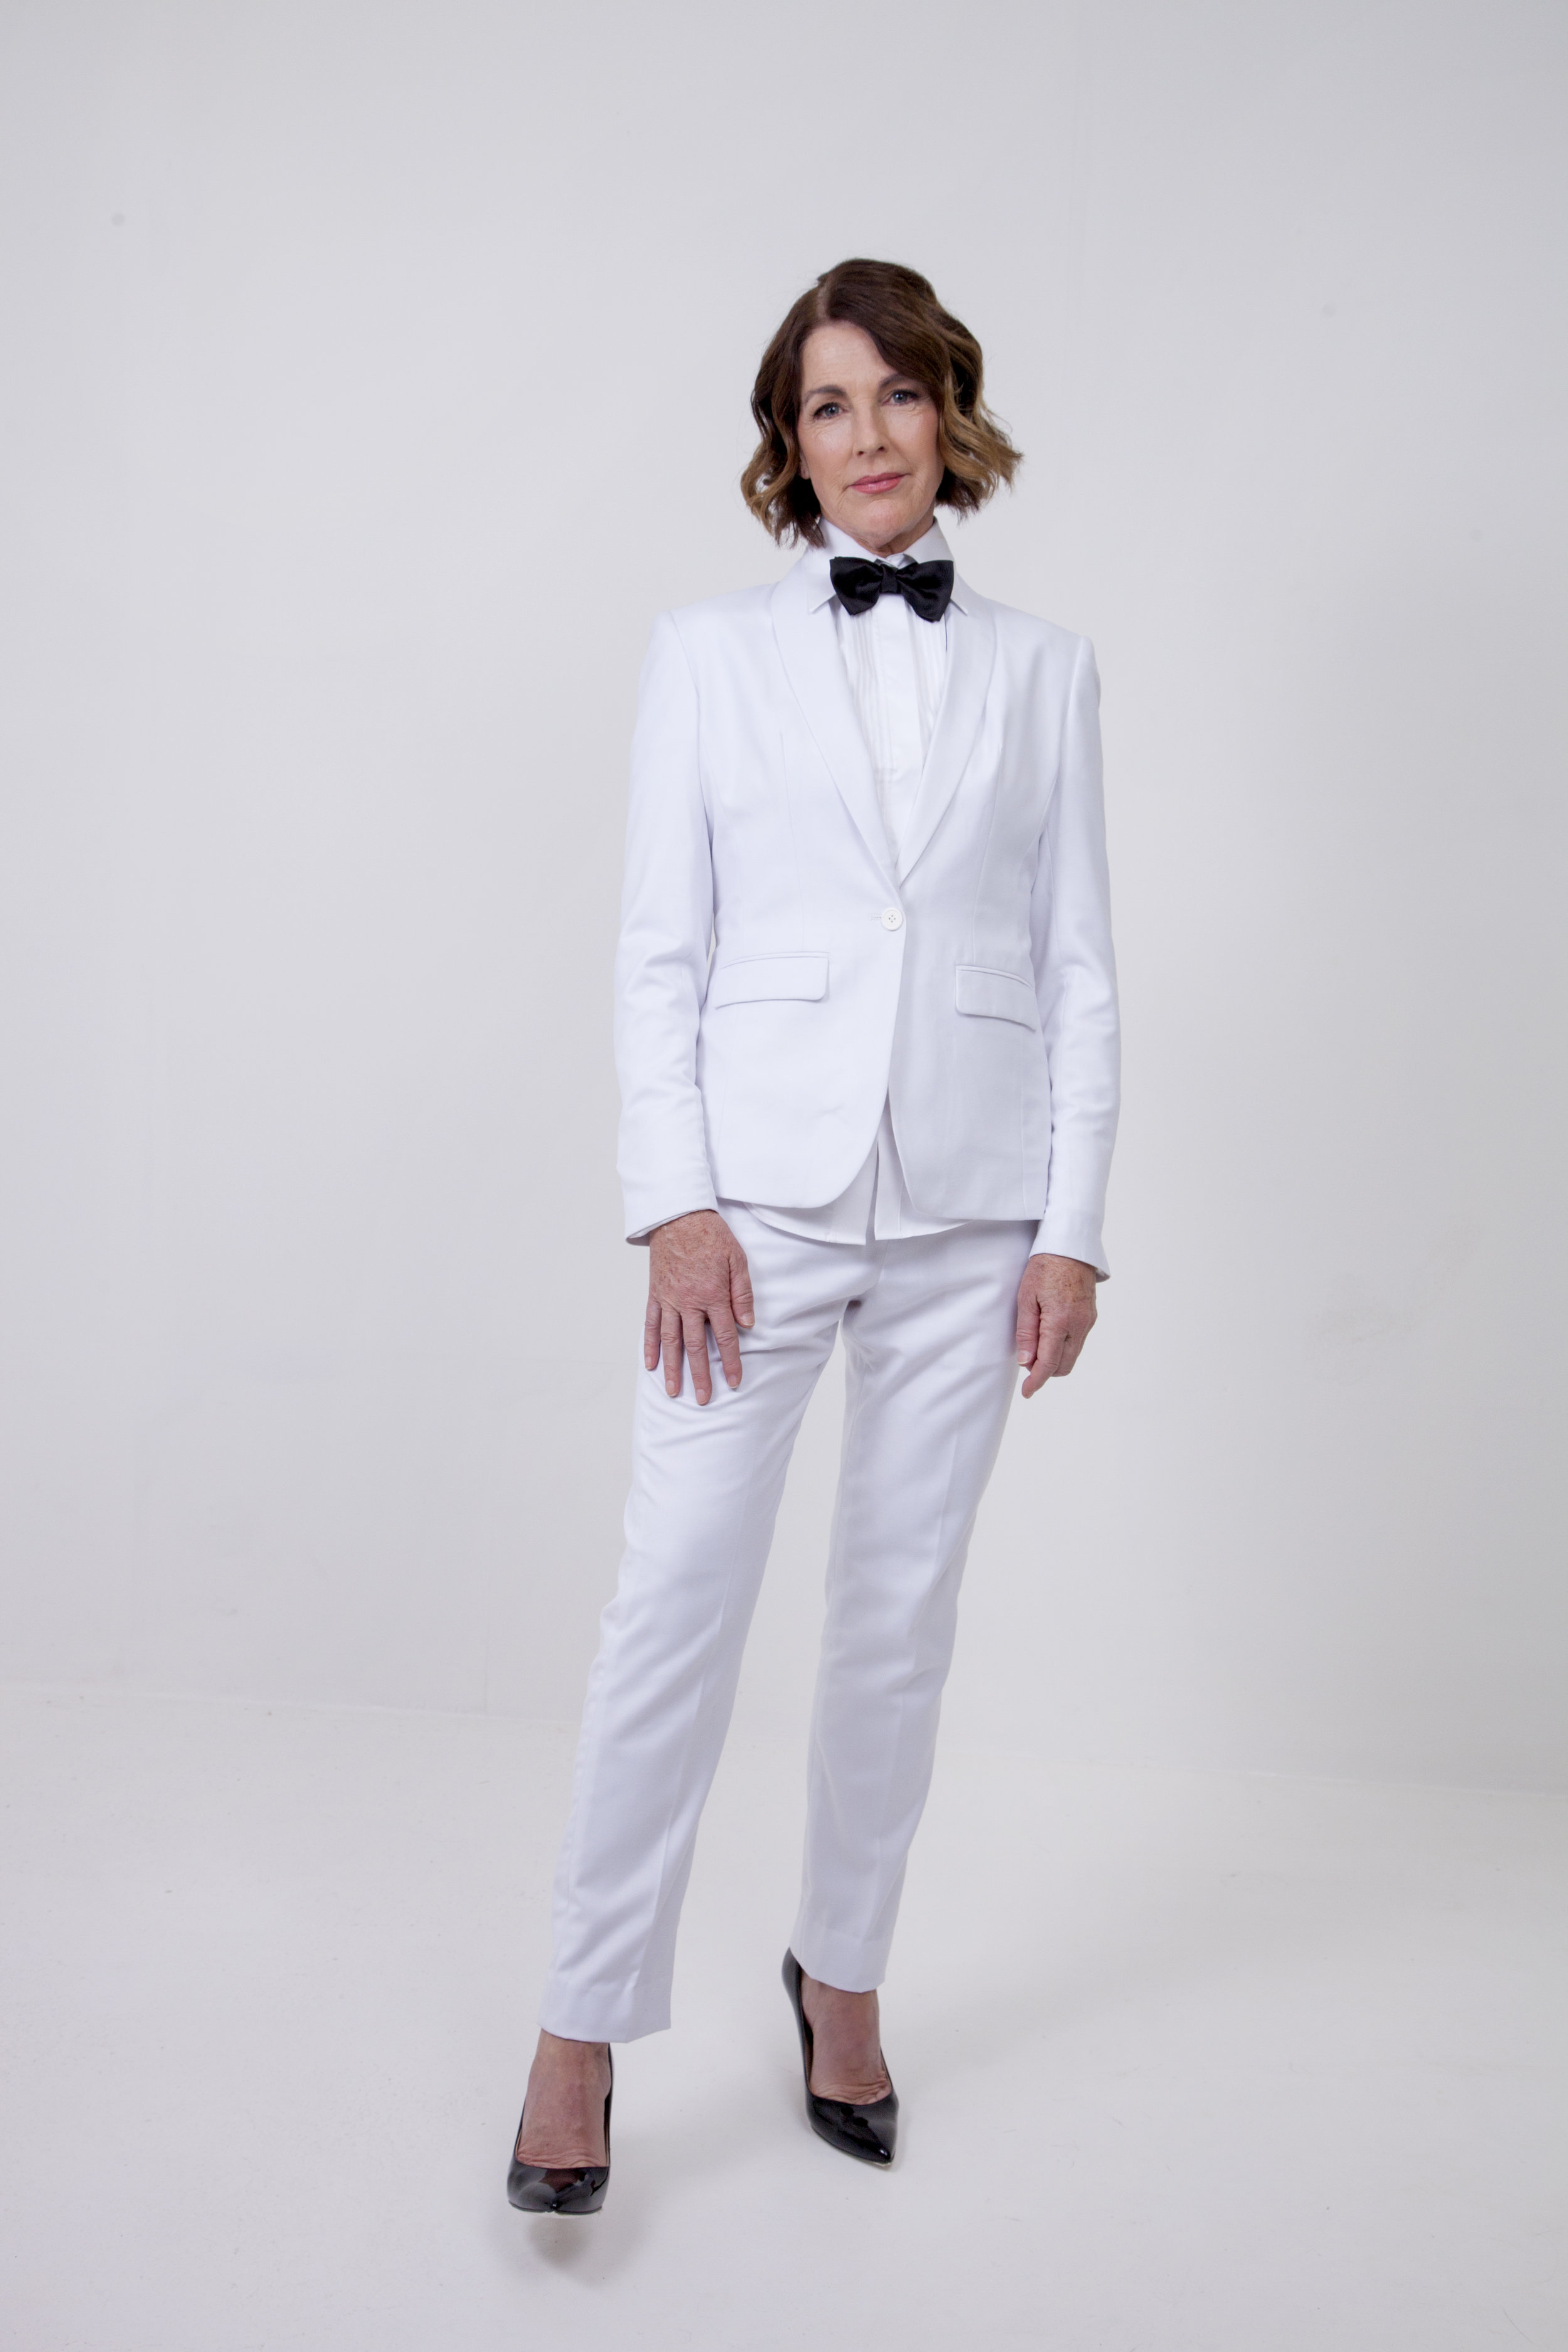 Bridal suit bow tie.jpg